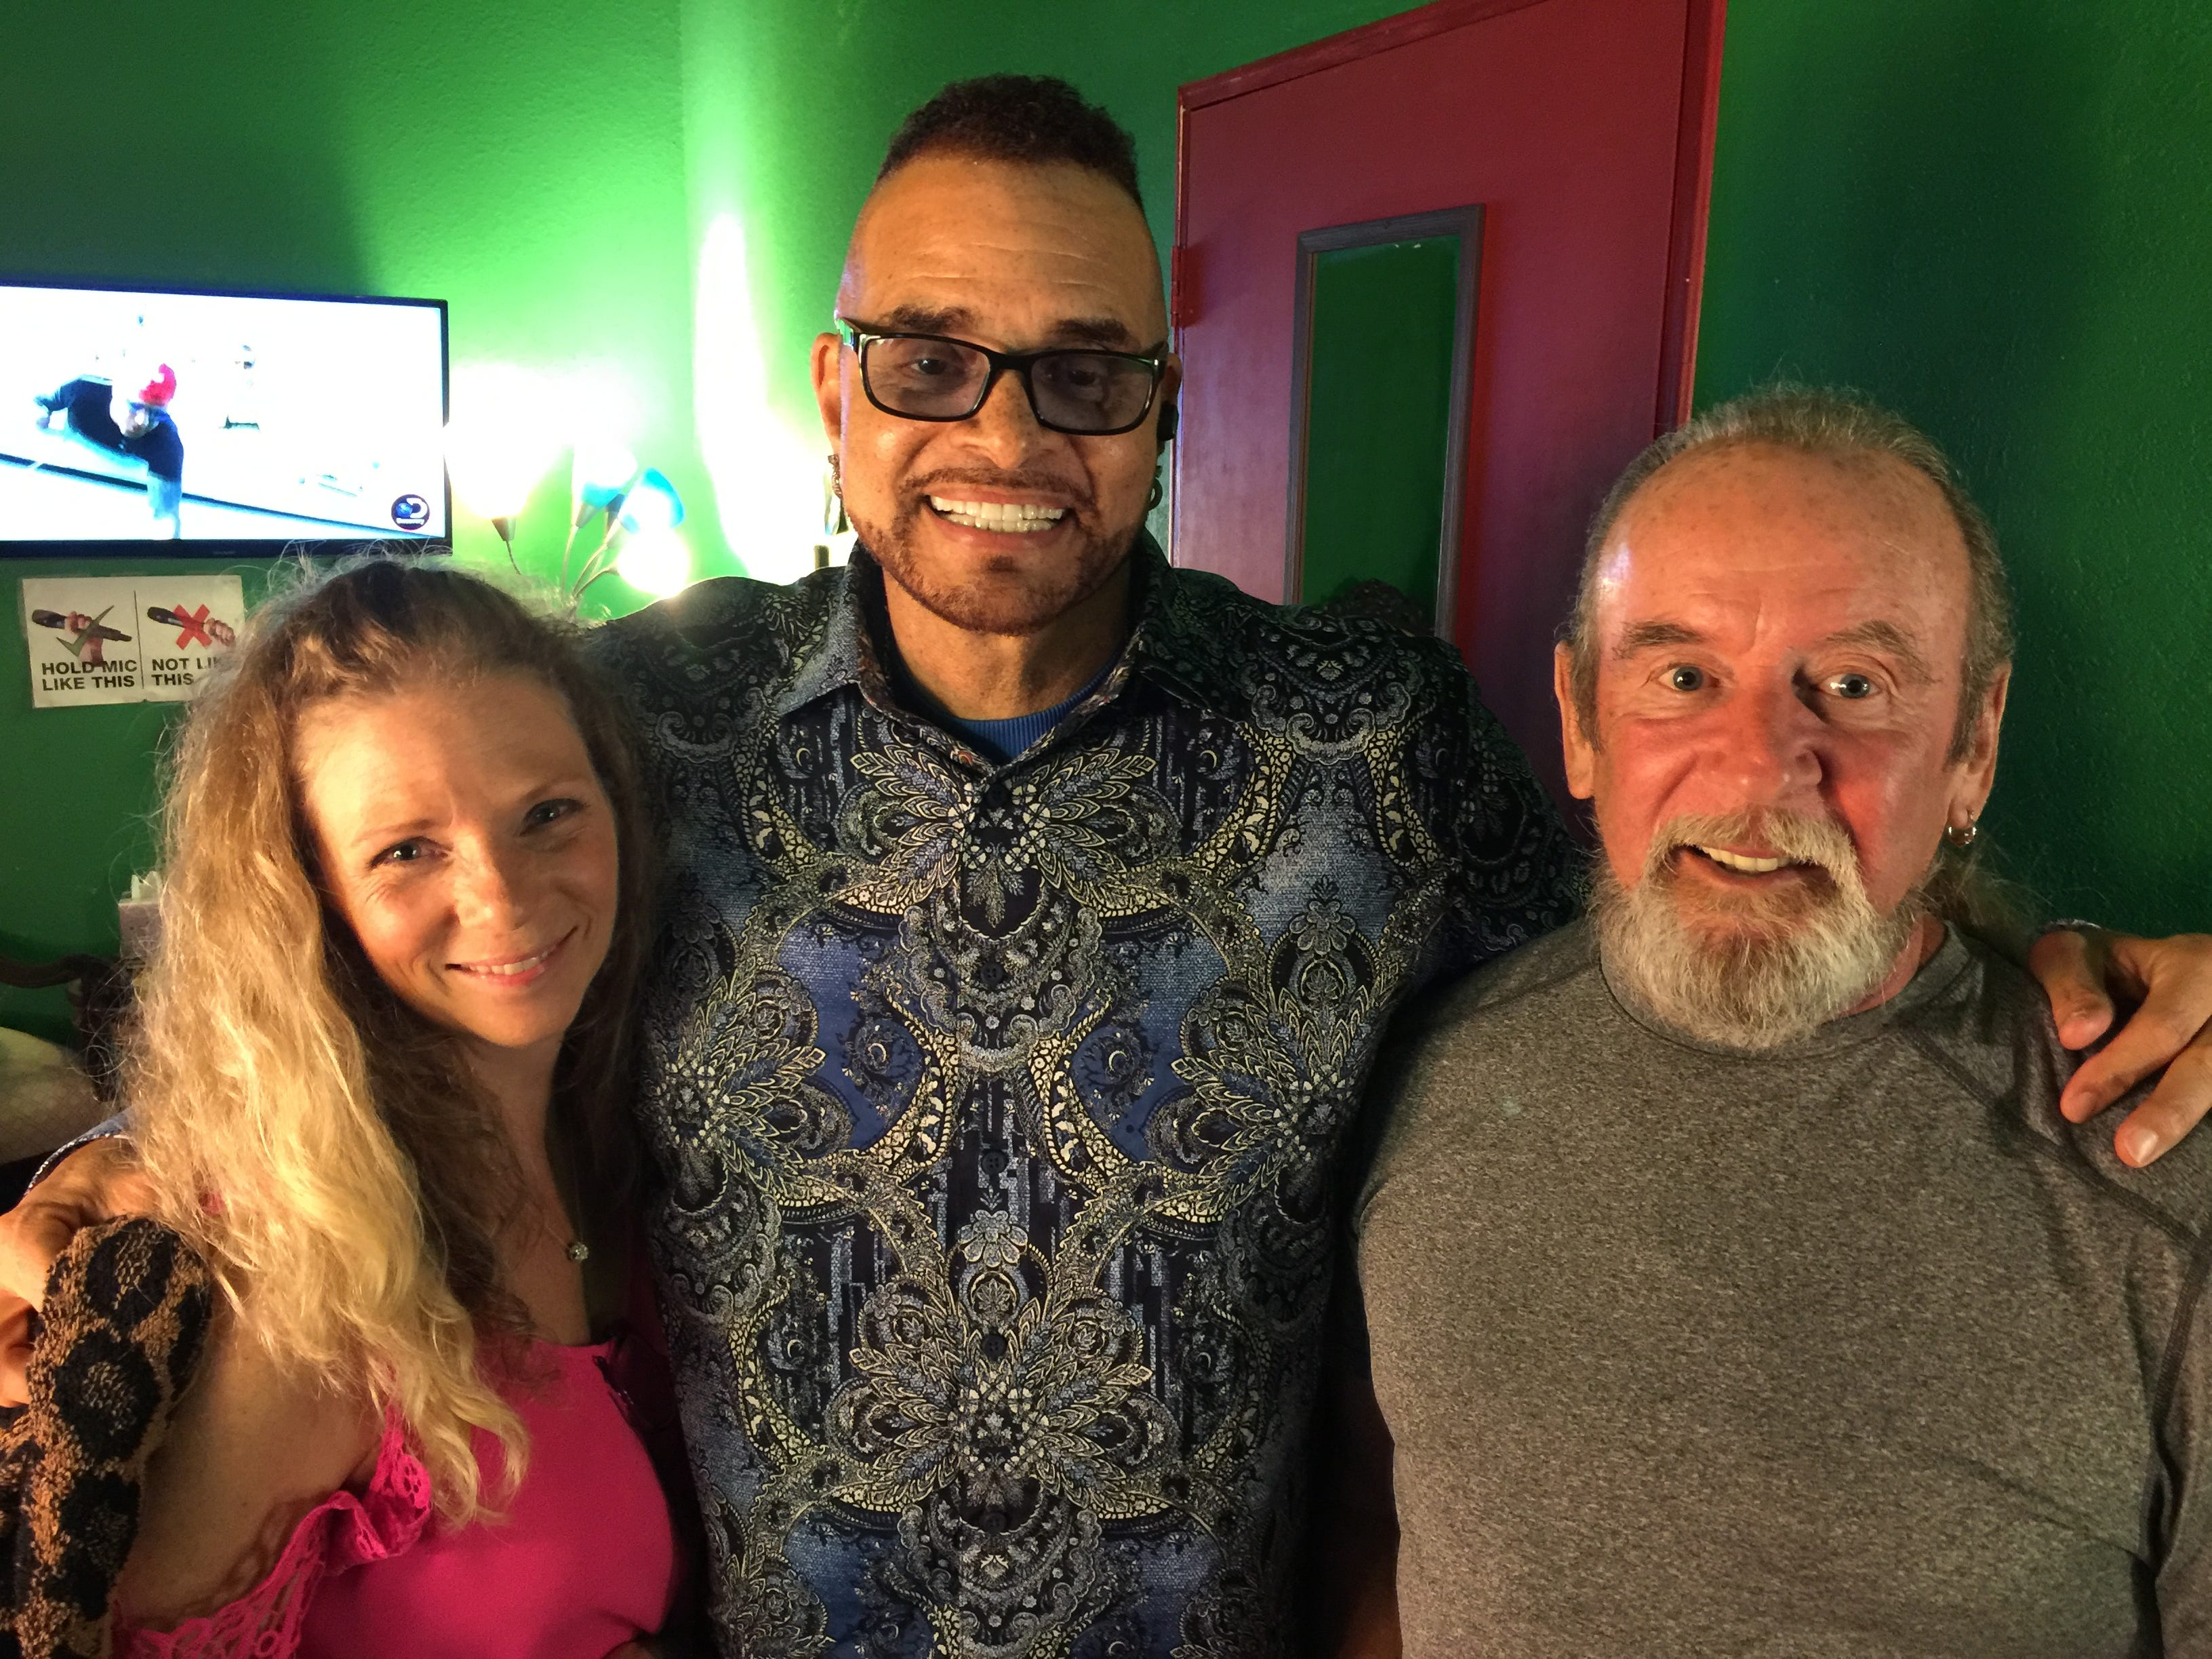 Gary Fields, along with his girlfriend,  Lesley Smith, pose with actor and comedian Sinbad.